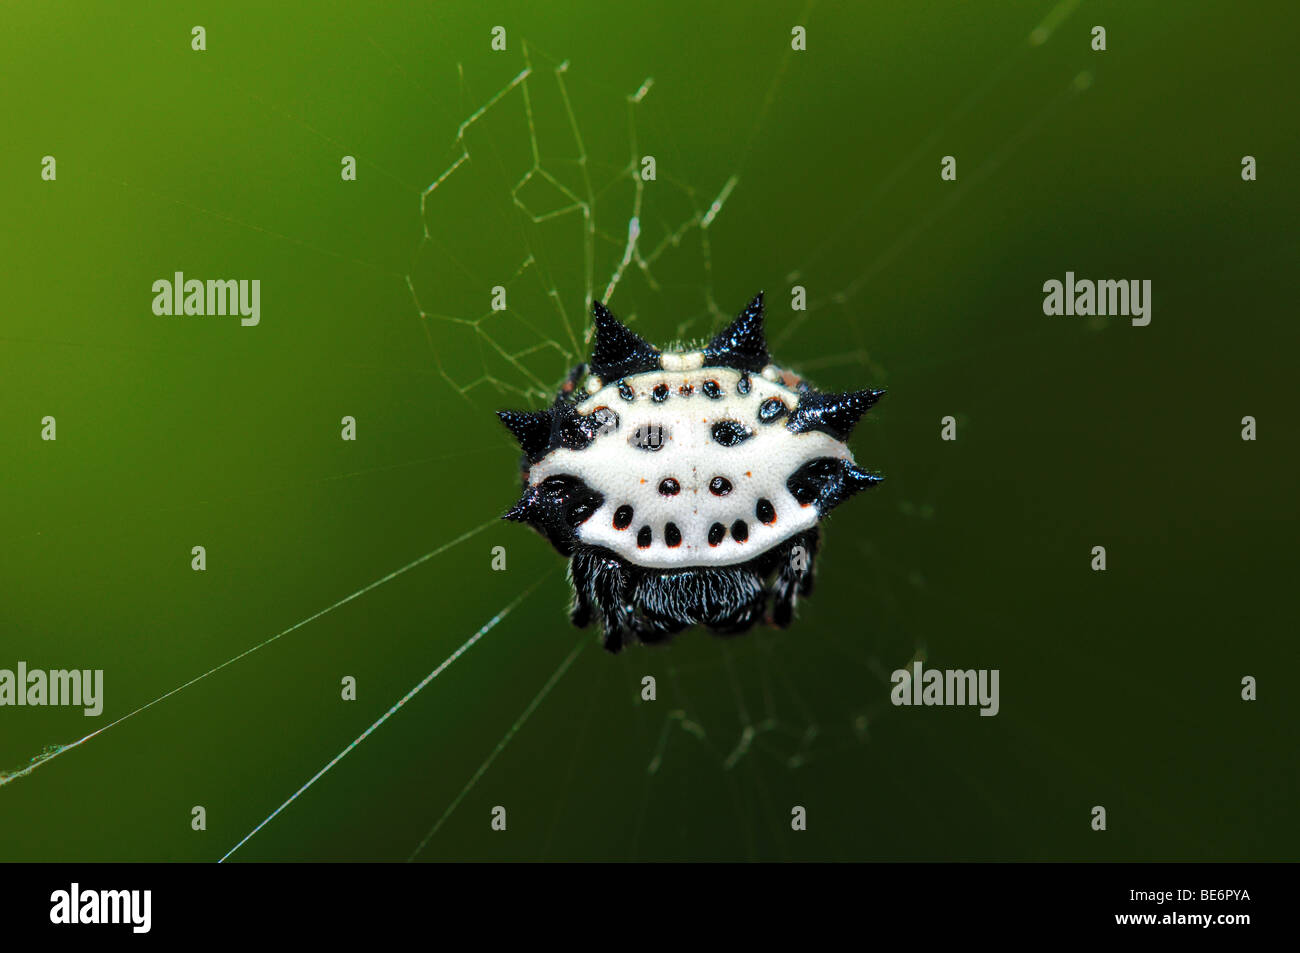 A crab-like spiny orb weaver spider. Texas, USA. - Stock Image